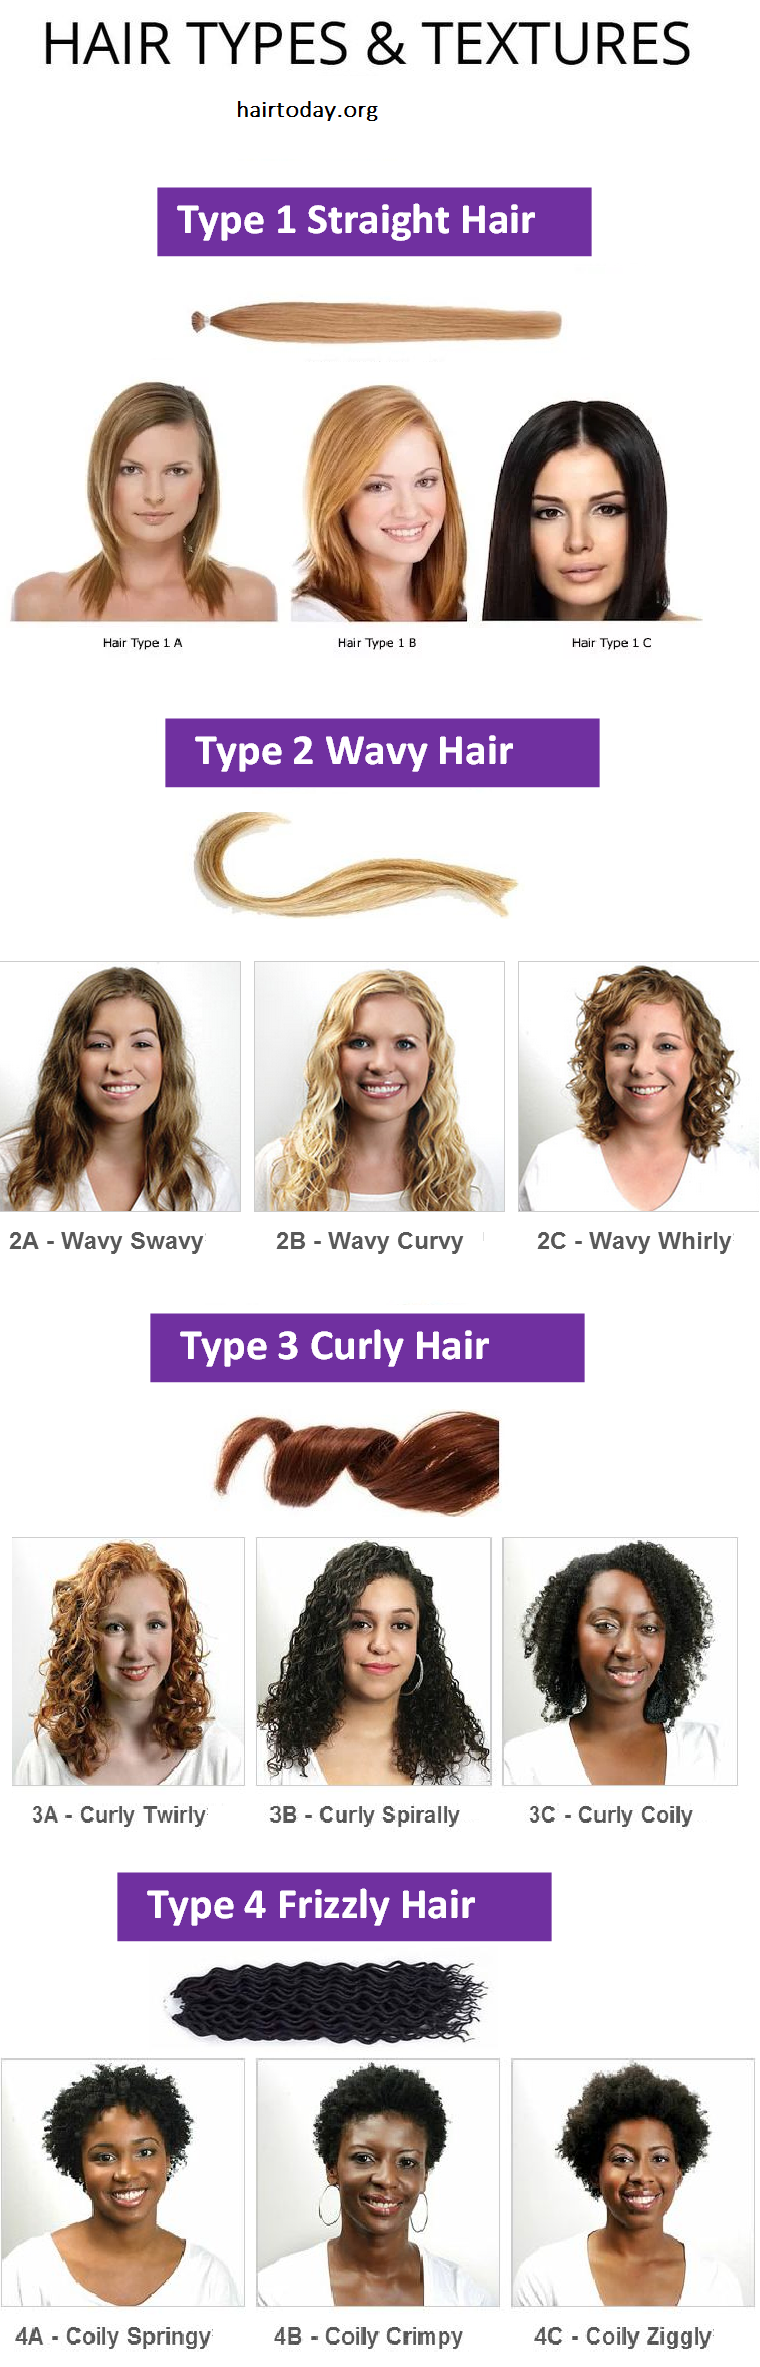 hair types and textures